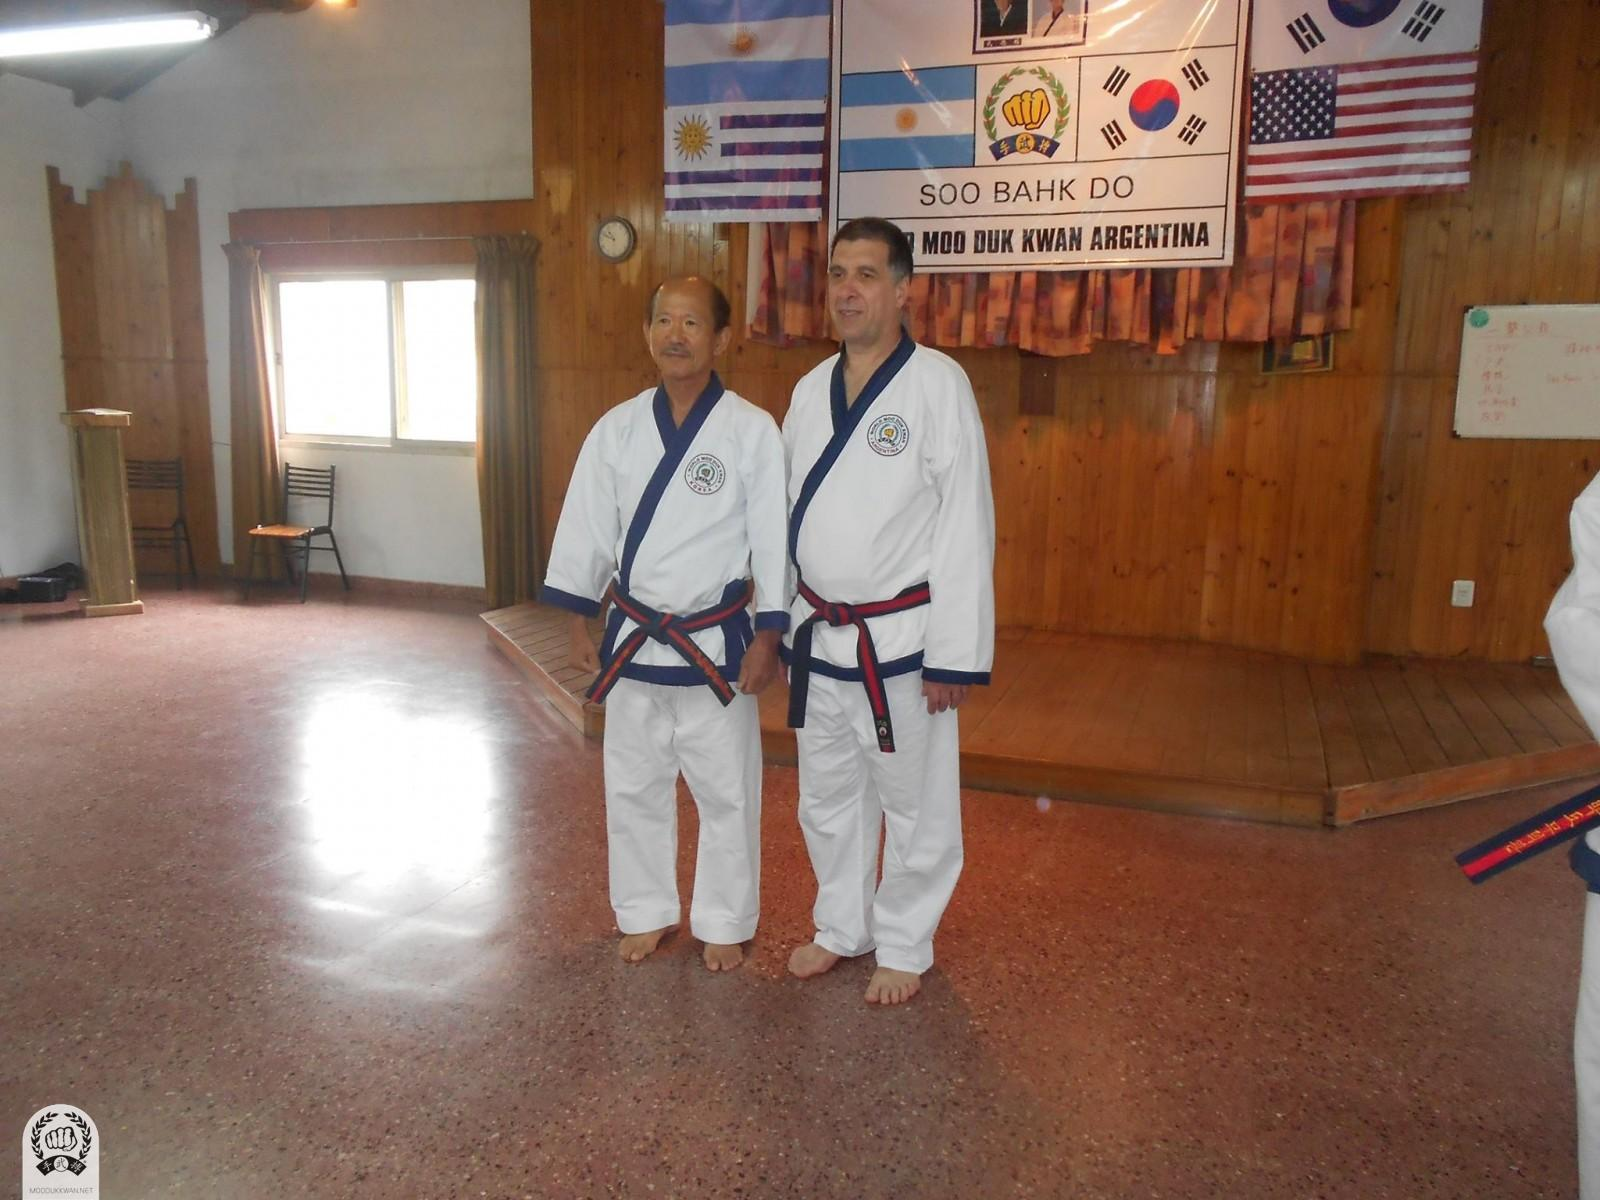 moo duk kwan school proudly remembers carlos alberto schiavo dan bon 34642 moo duk kwan. Black Bedroom Furniture Sets. Home Design Ideas